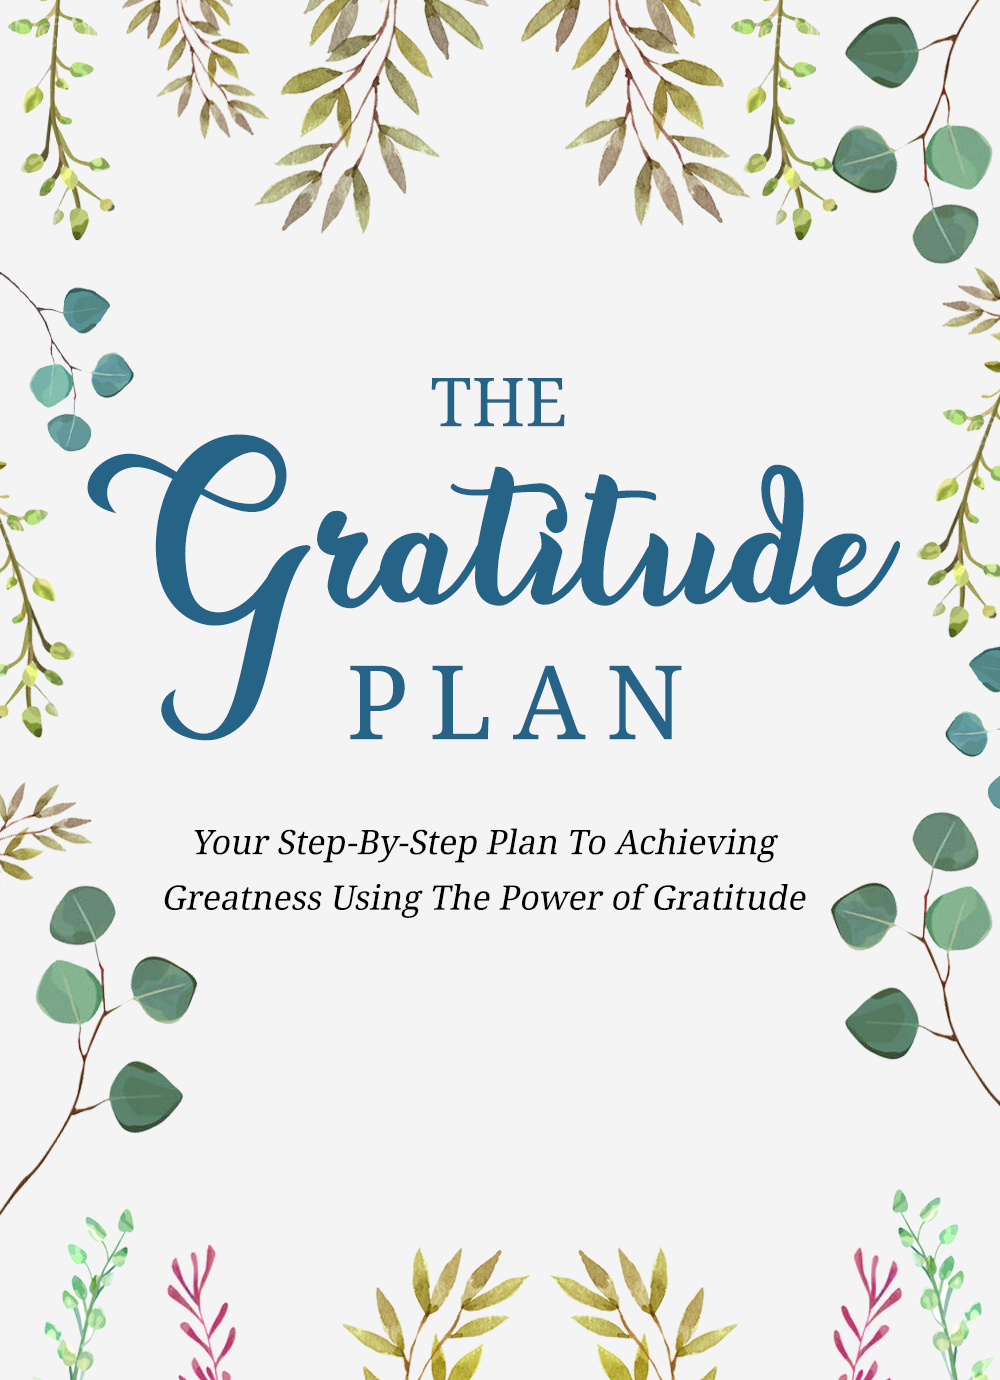 The Gratitude Plan (Your Step-By-Step Plan To Achieving Greatness Using The Power Of Gratitude) Ebook's Ebook Image